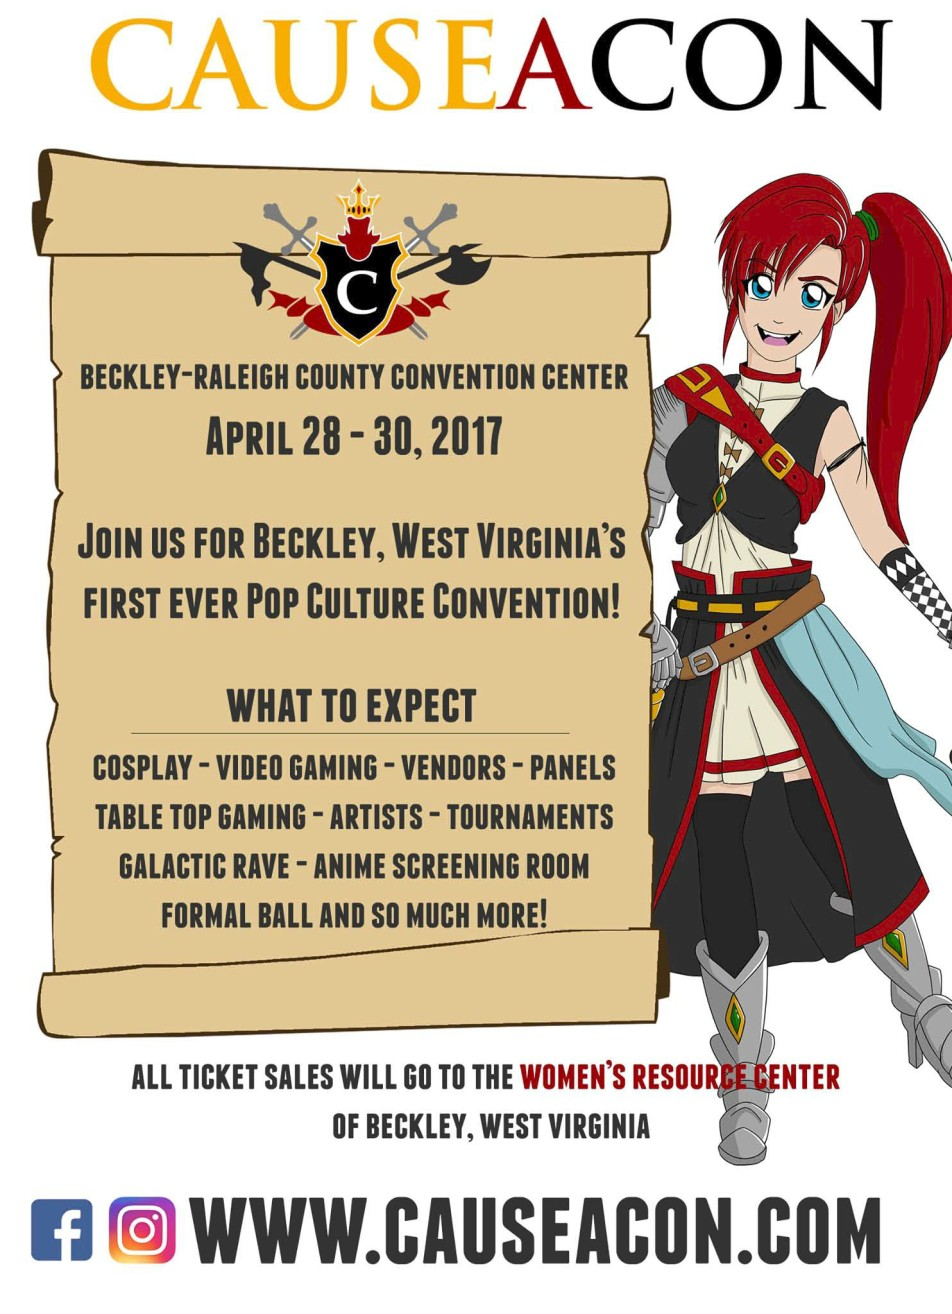 causeacon flyer